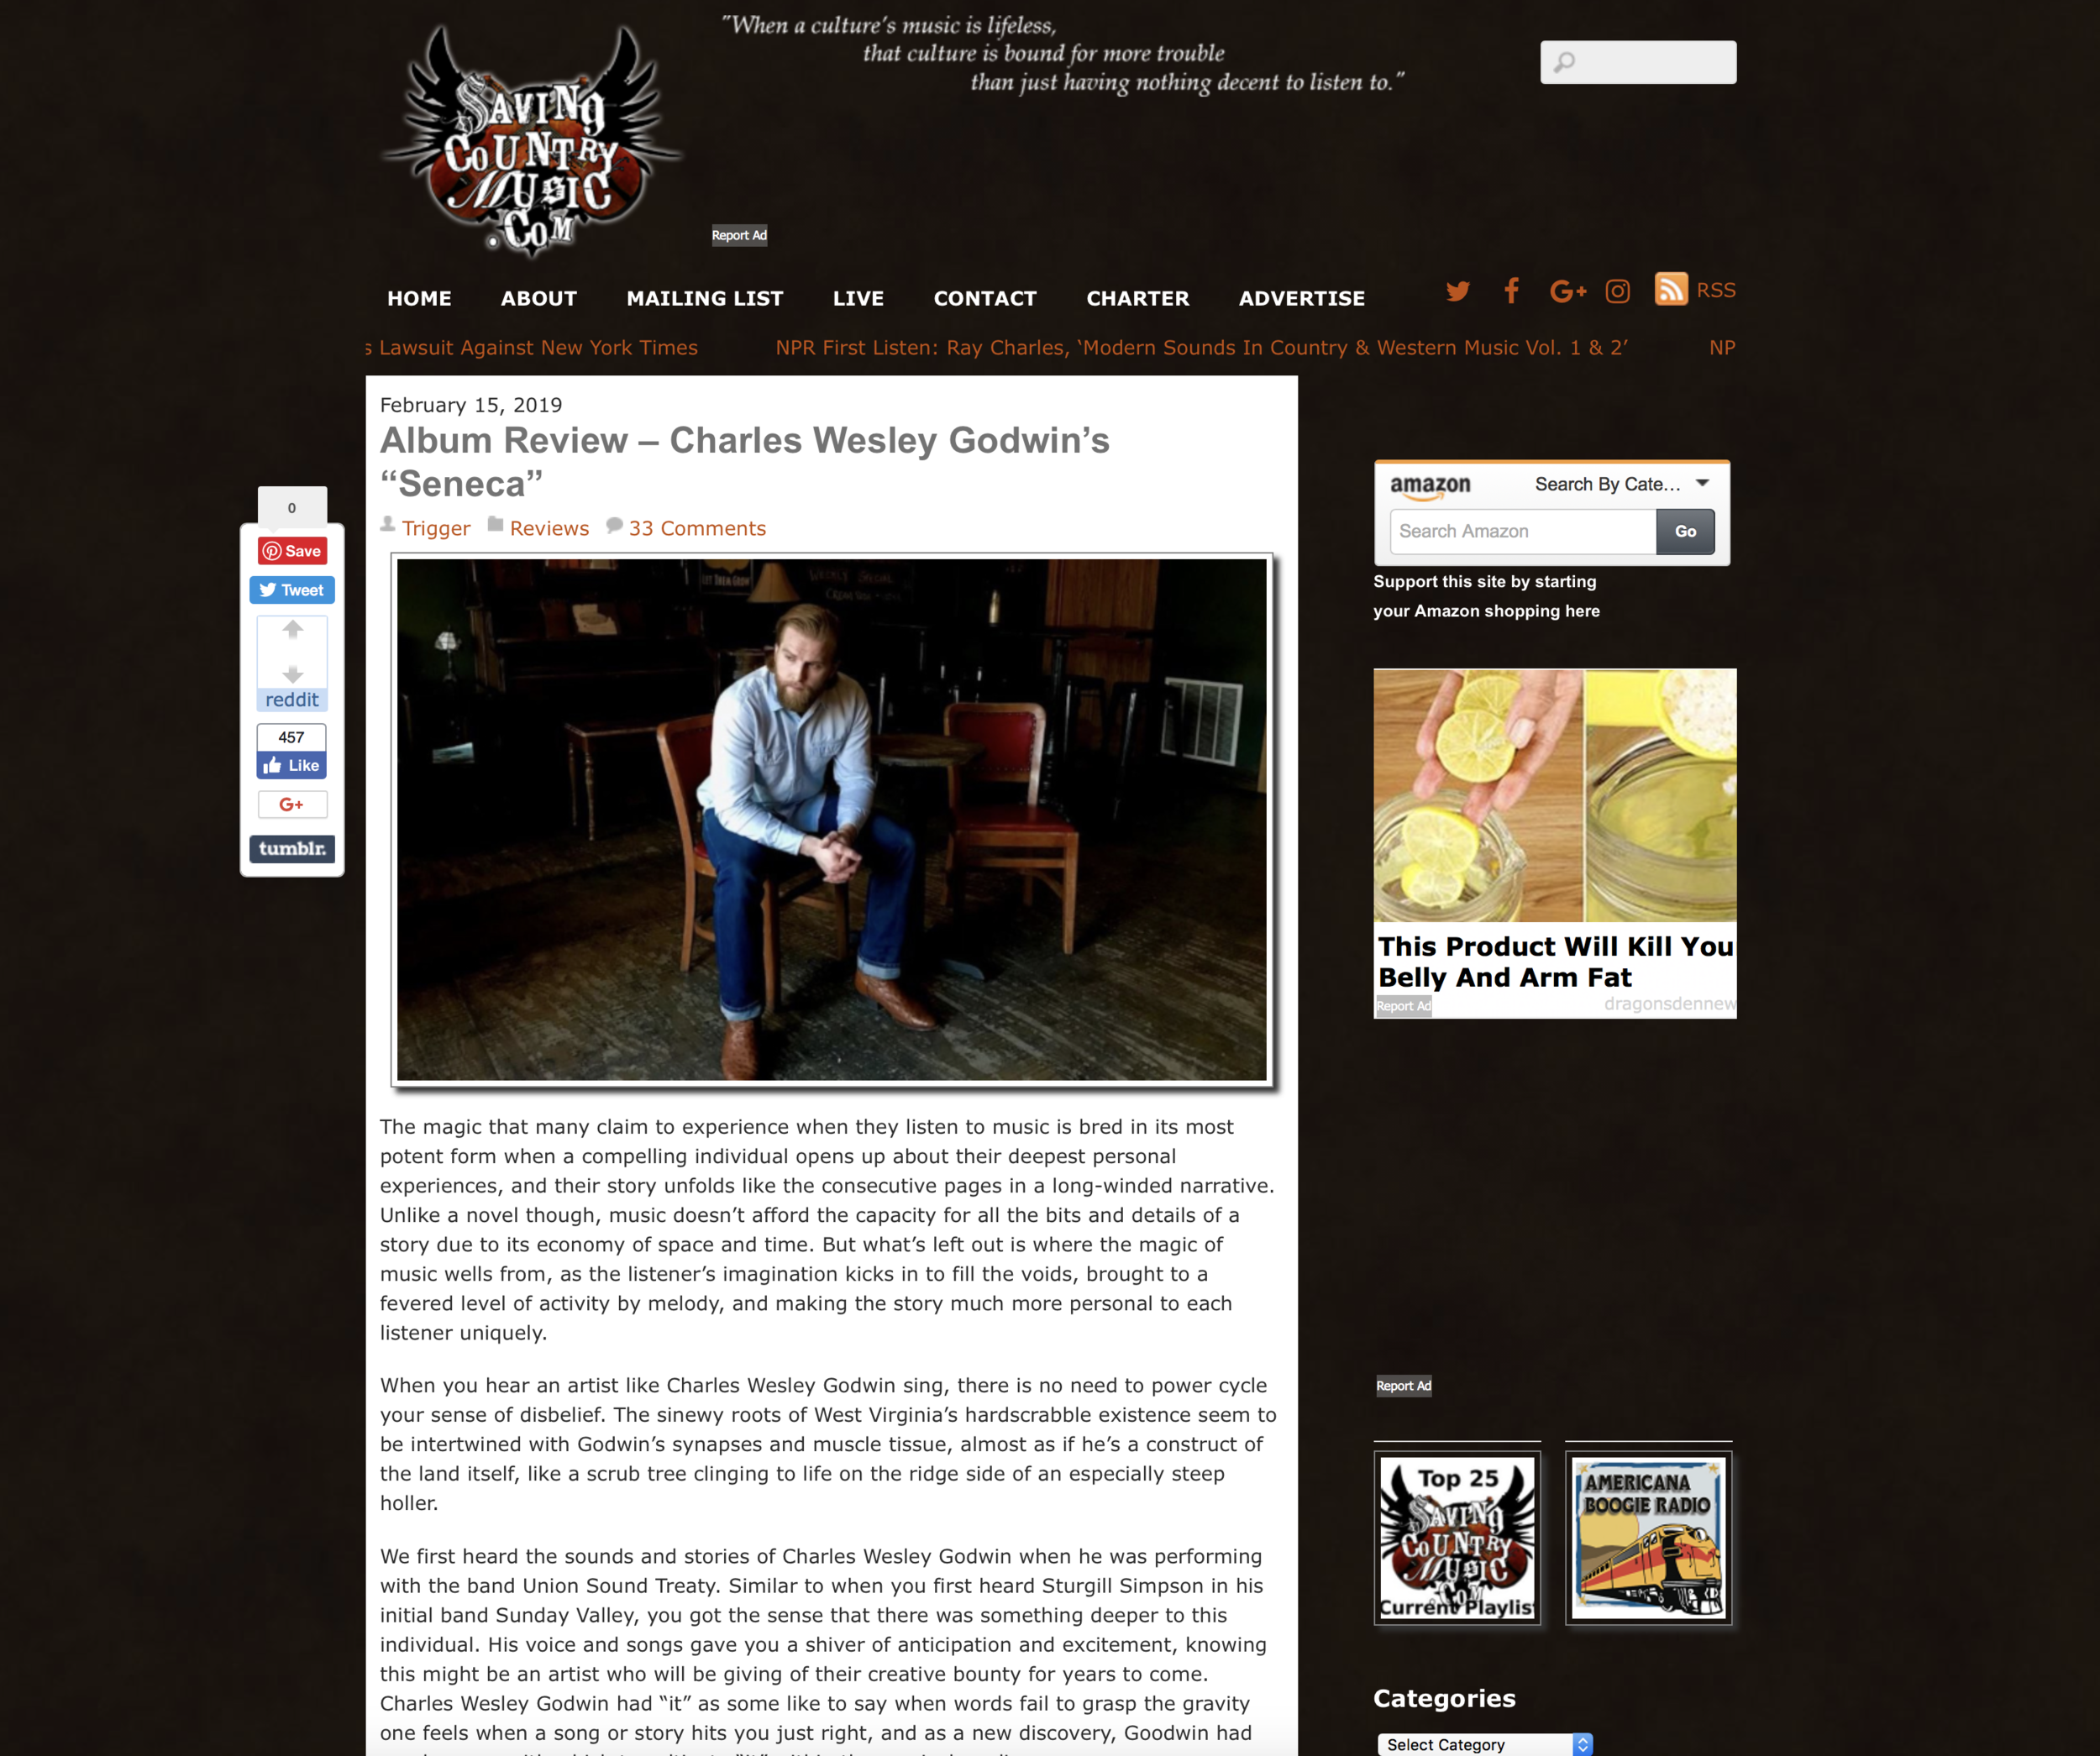 Saving Country Music Album Review